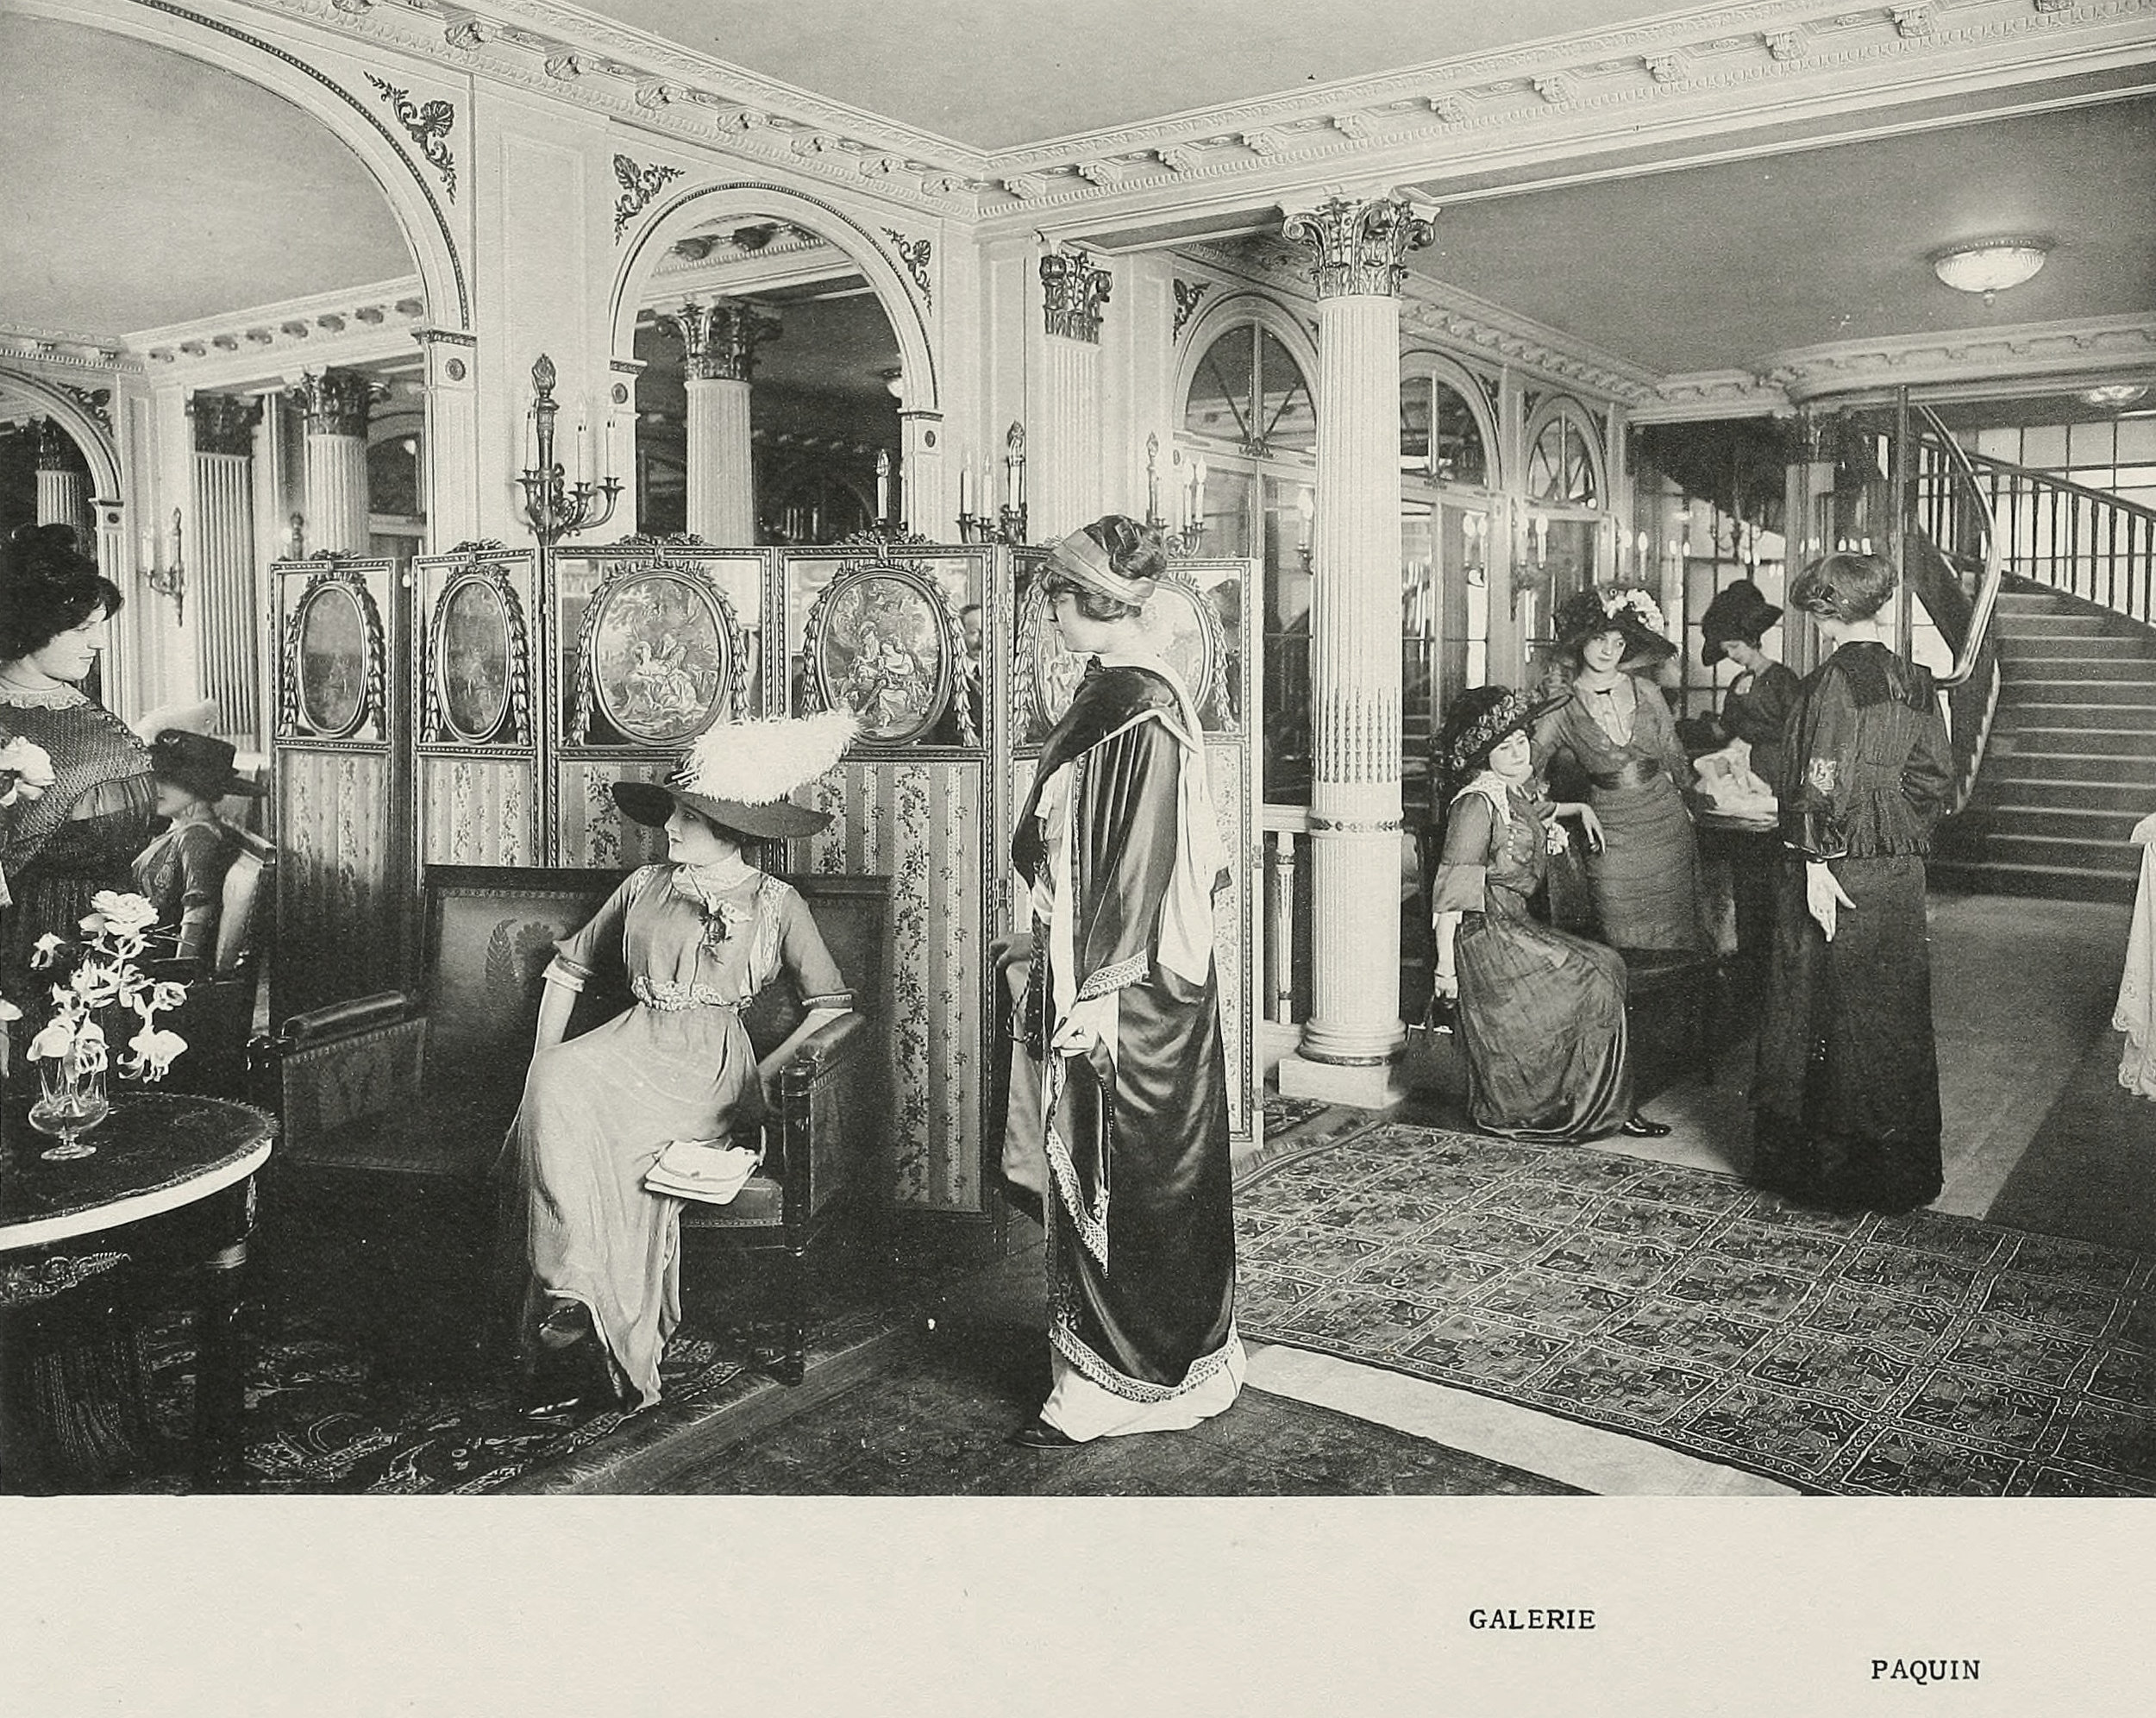 Inside the House of Paquin, 1910